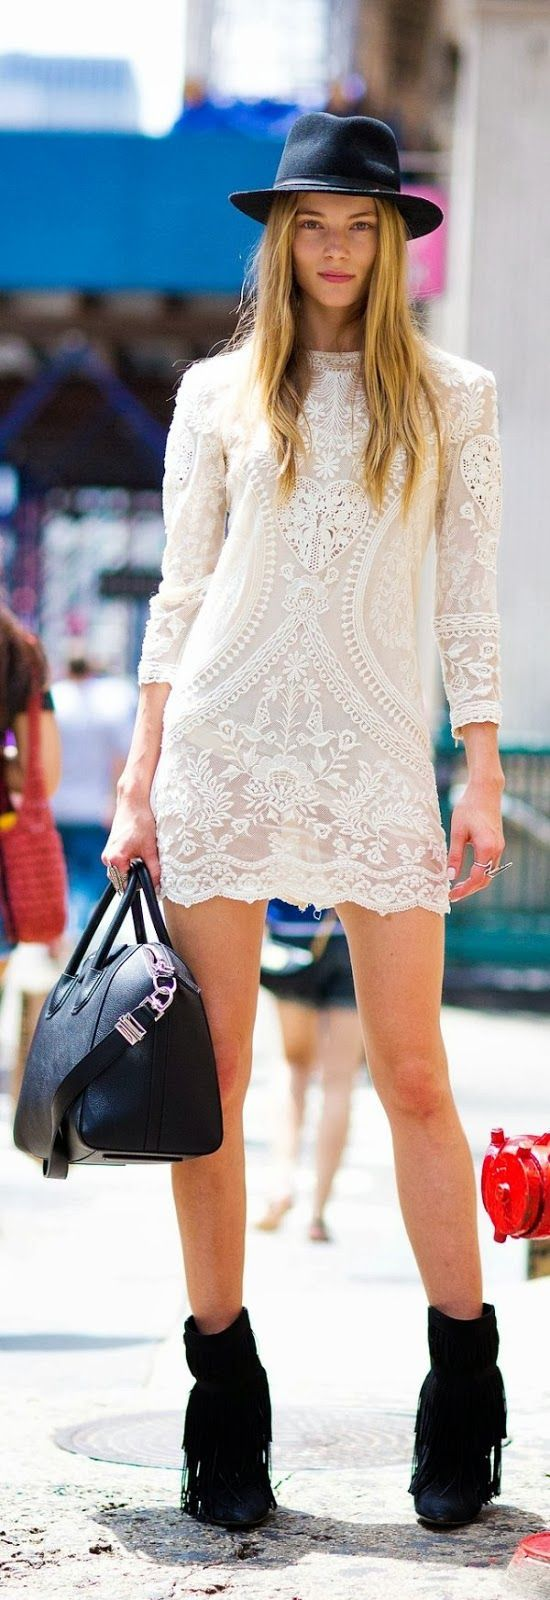 hat lace dress with long boots